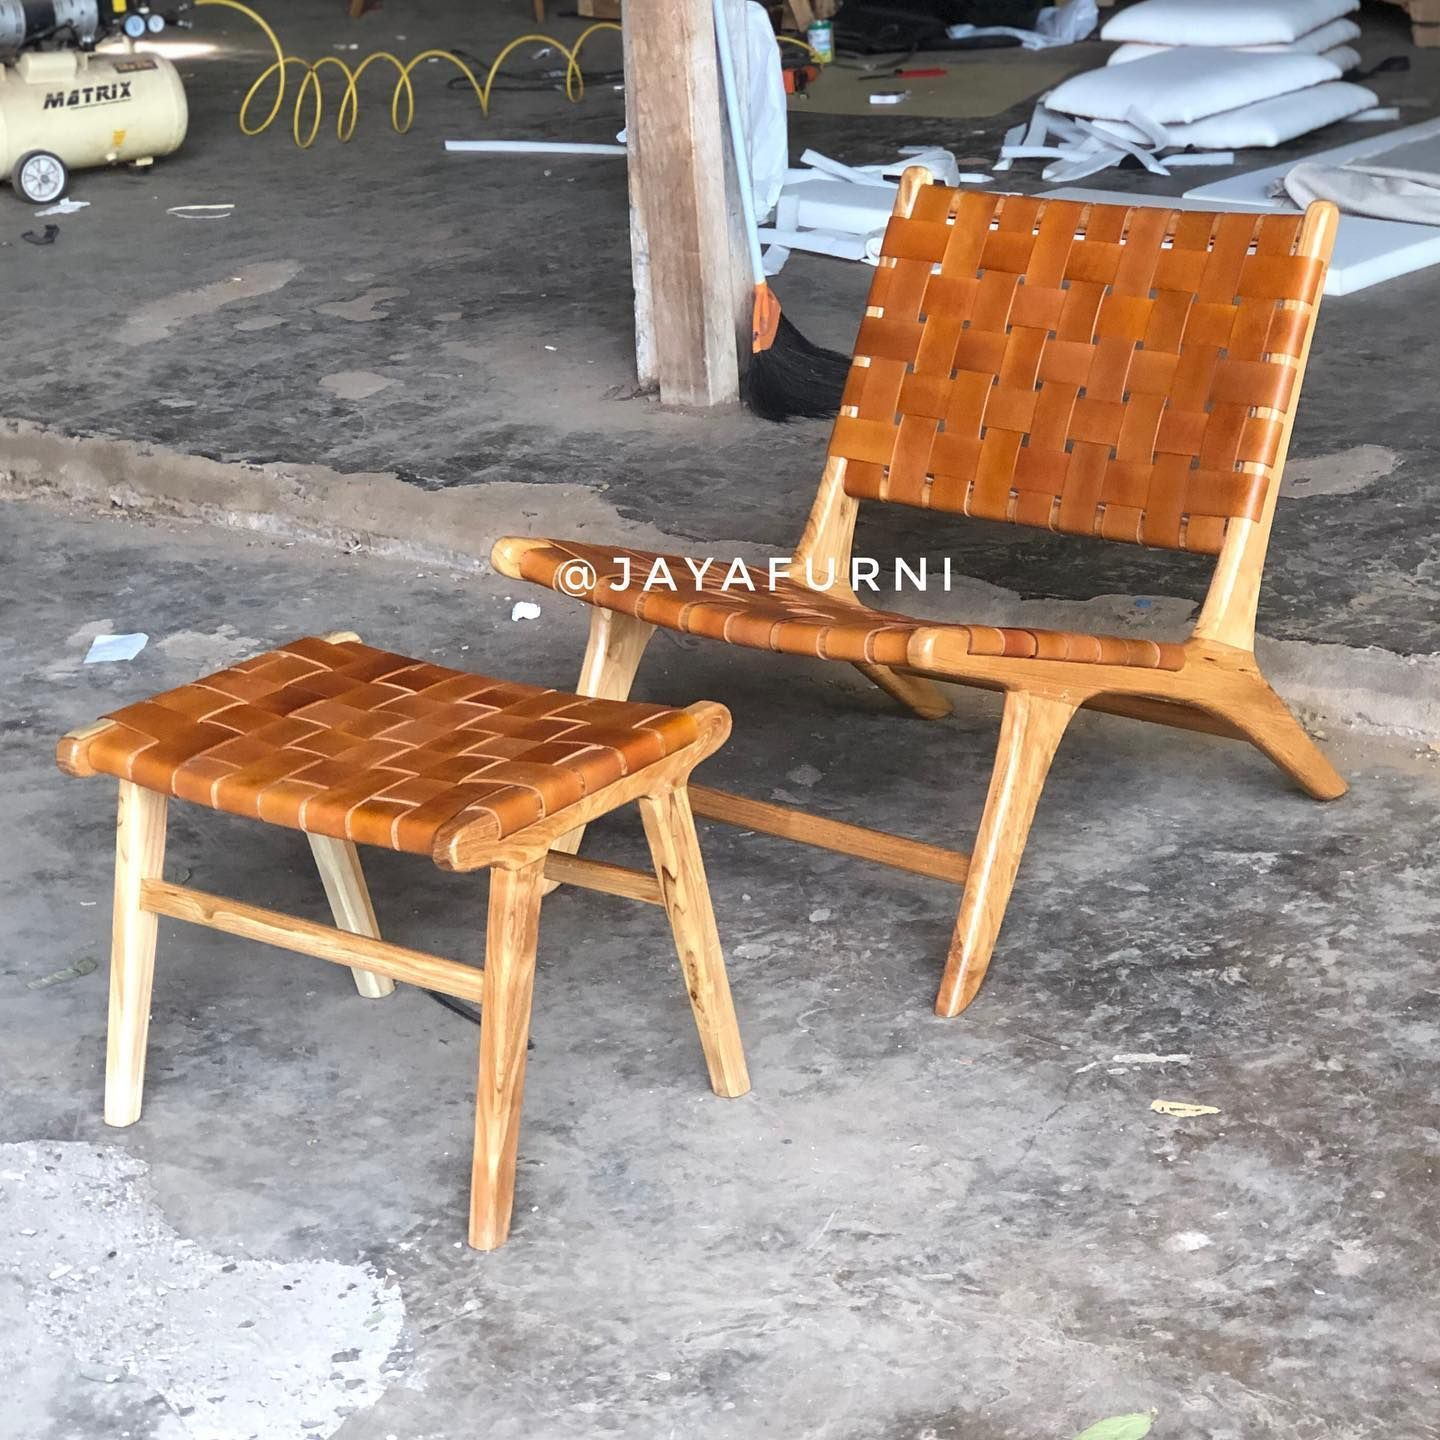 dimensi 65 x 80 x 75 (cm ) Material tek wood & kulit alami  Free custom Colour  #furnituresale #furniturecafe #marketing #meubelminimalist #furniturebali #scandinavianhome #bangkukayu #teakwood #meubelmurah #furniturebandung #furniturejakarta #furniturevintage #kursirotan #furniture #livingroom #jakartafurniture #homeliving #furnituremurah #kursicafe #furnituredesign #diningchair #homeinterior #interior #cafechair #kursisofaminimalis